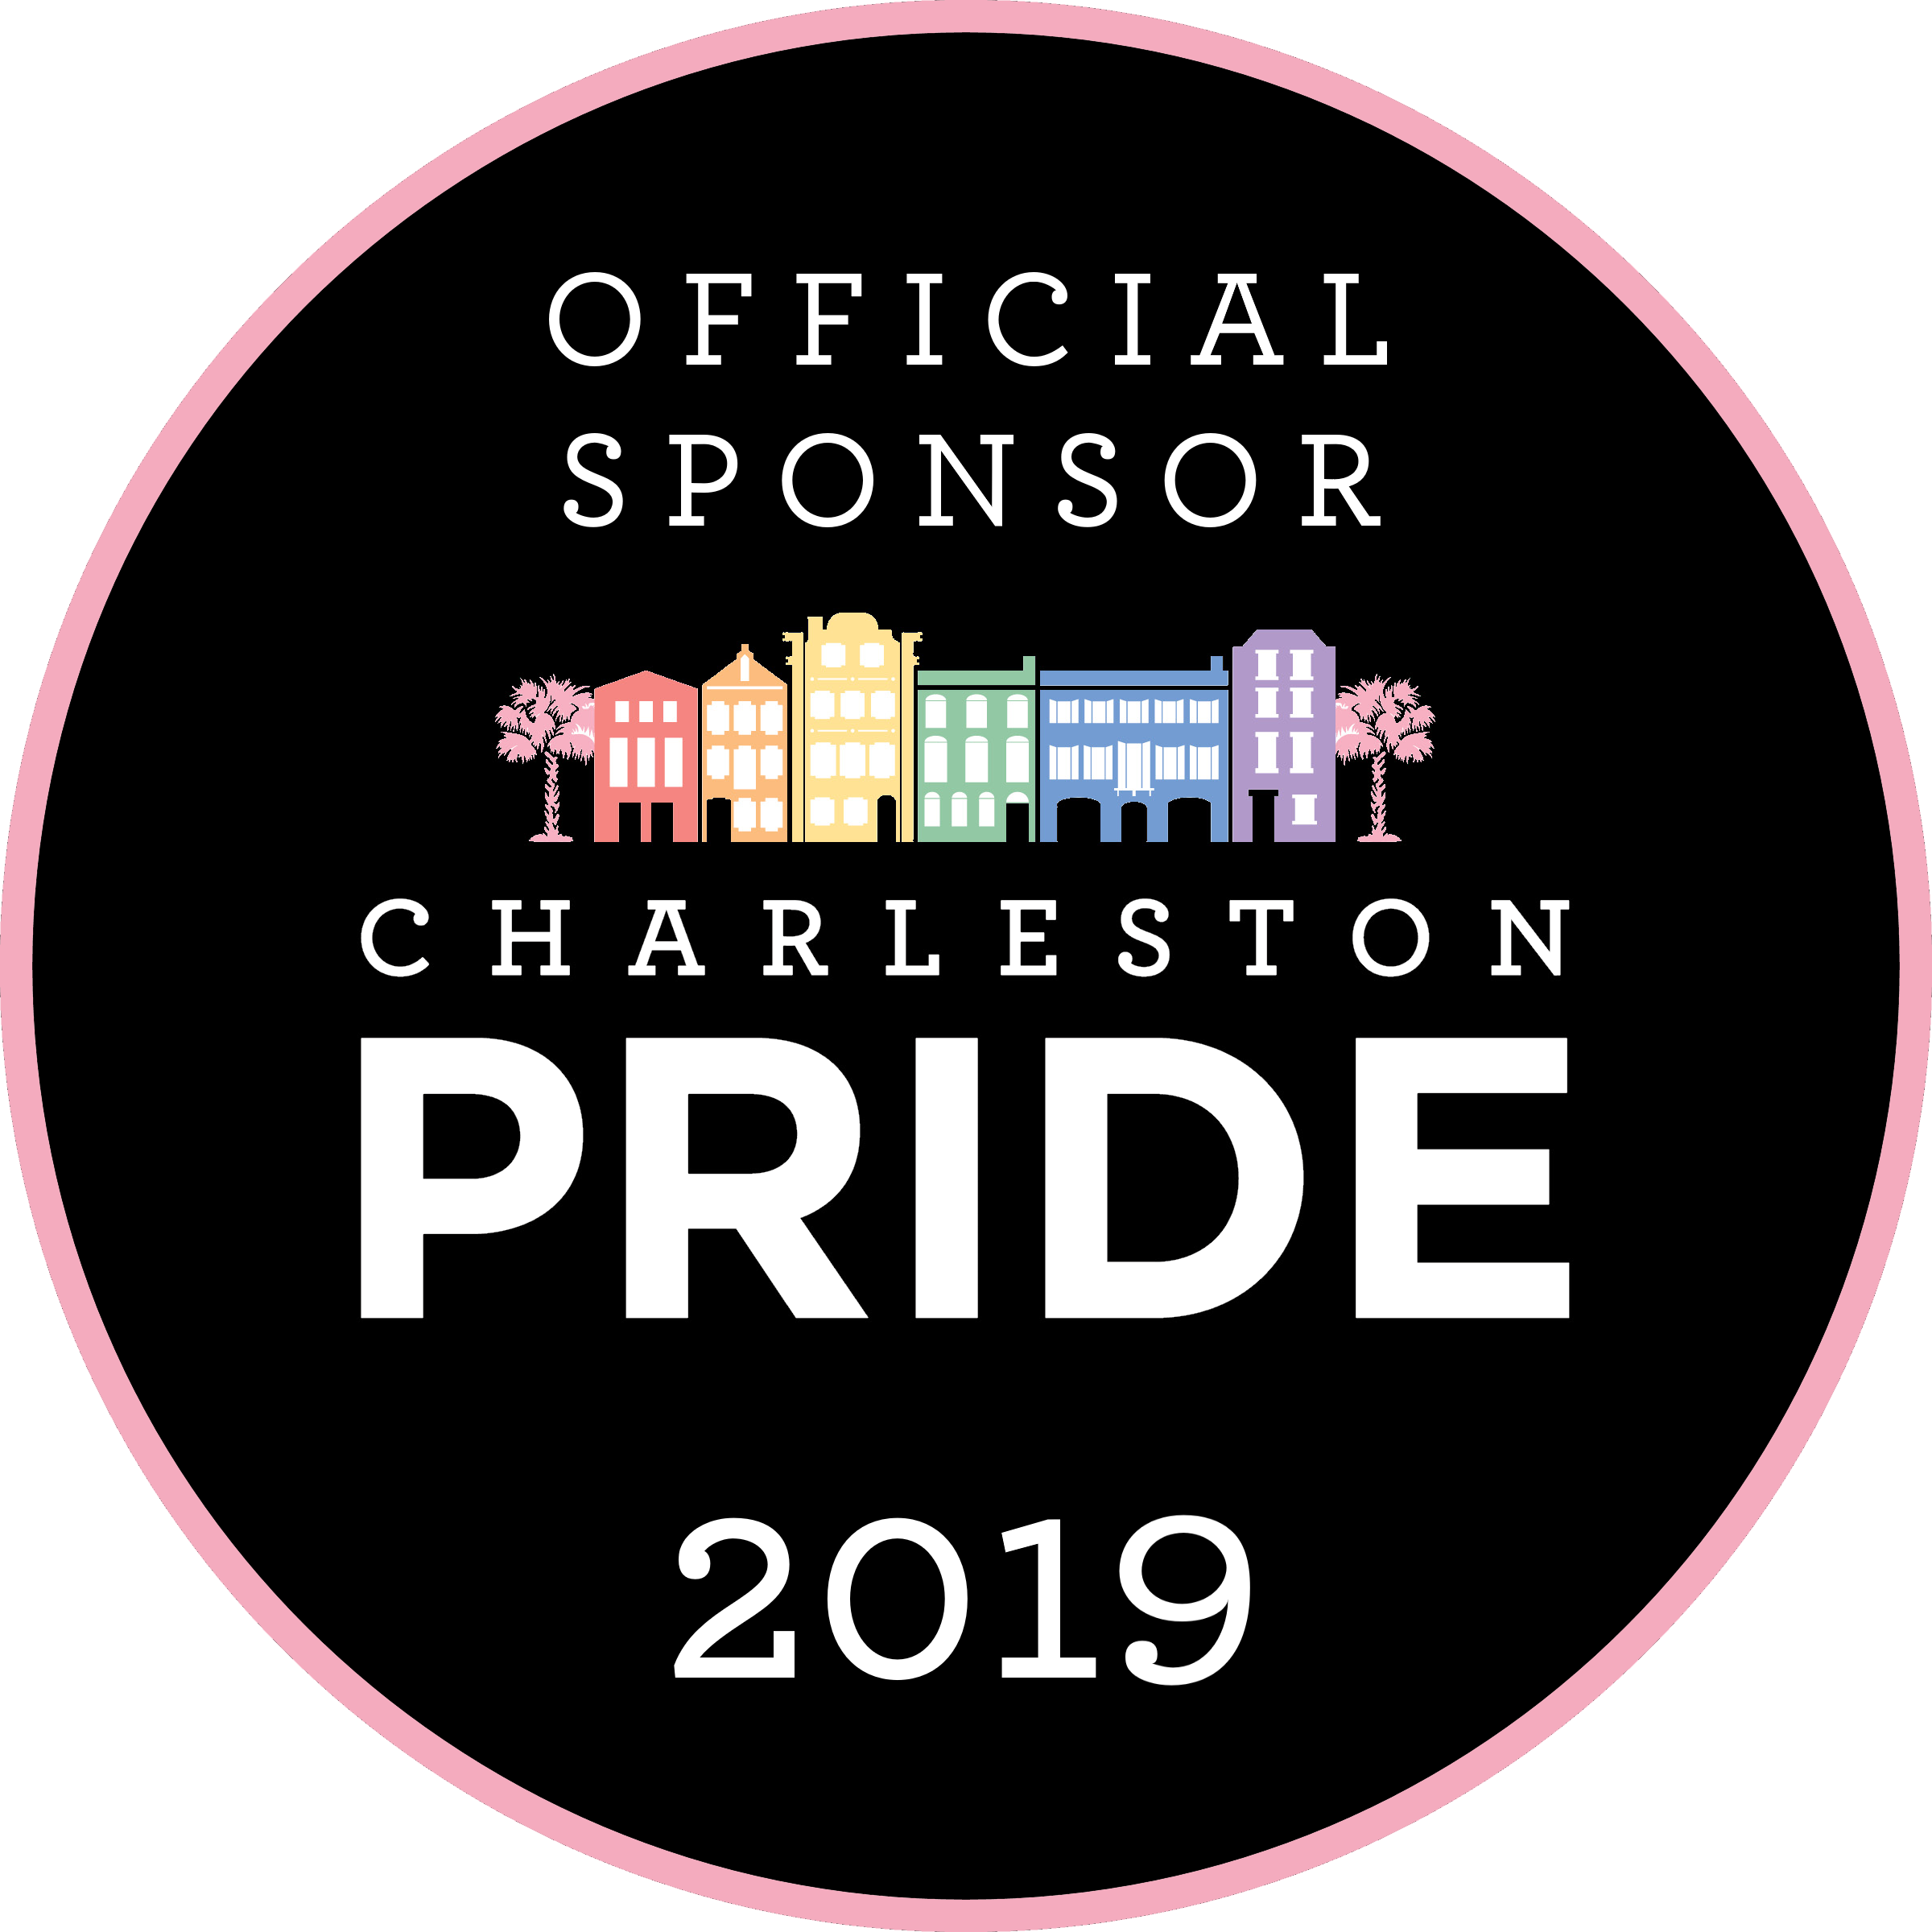 PRIDE SPONSOR BADGE 2019.png